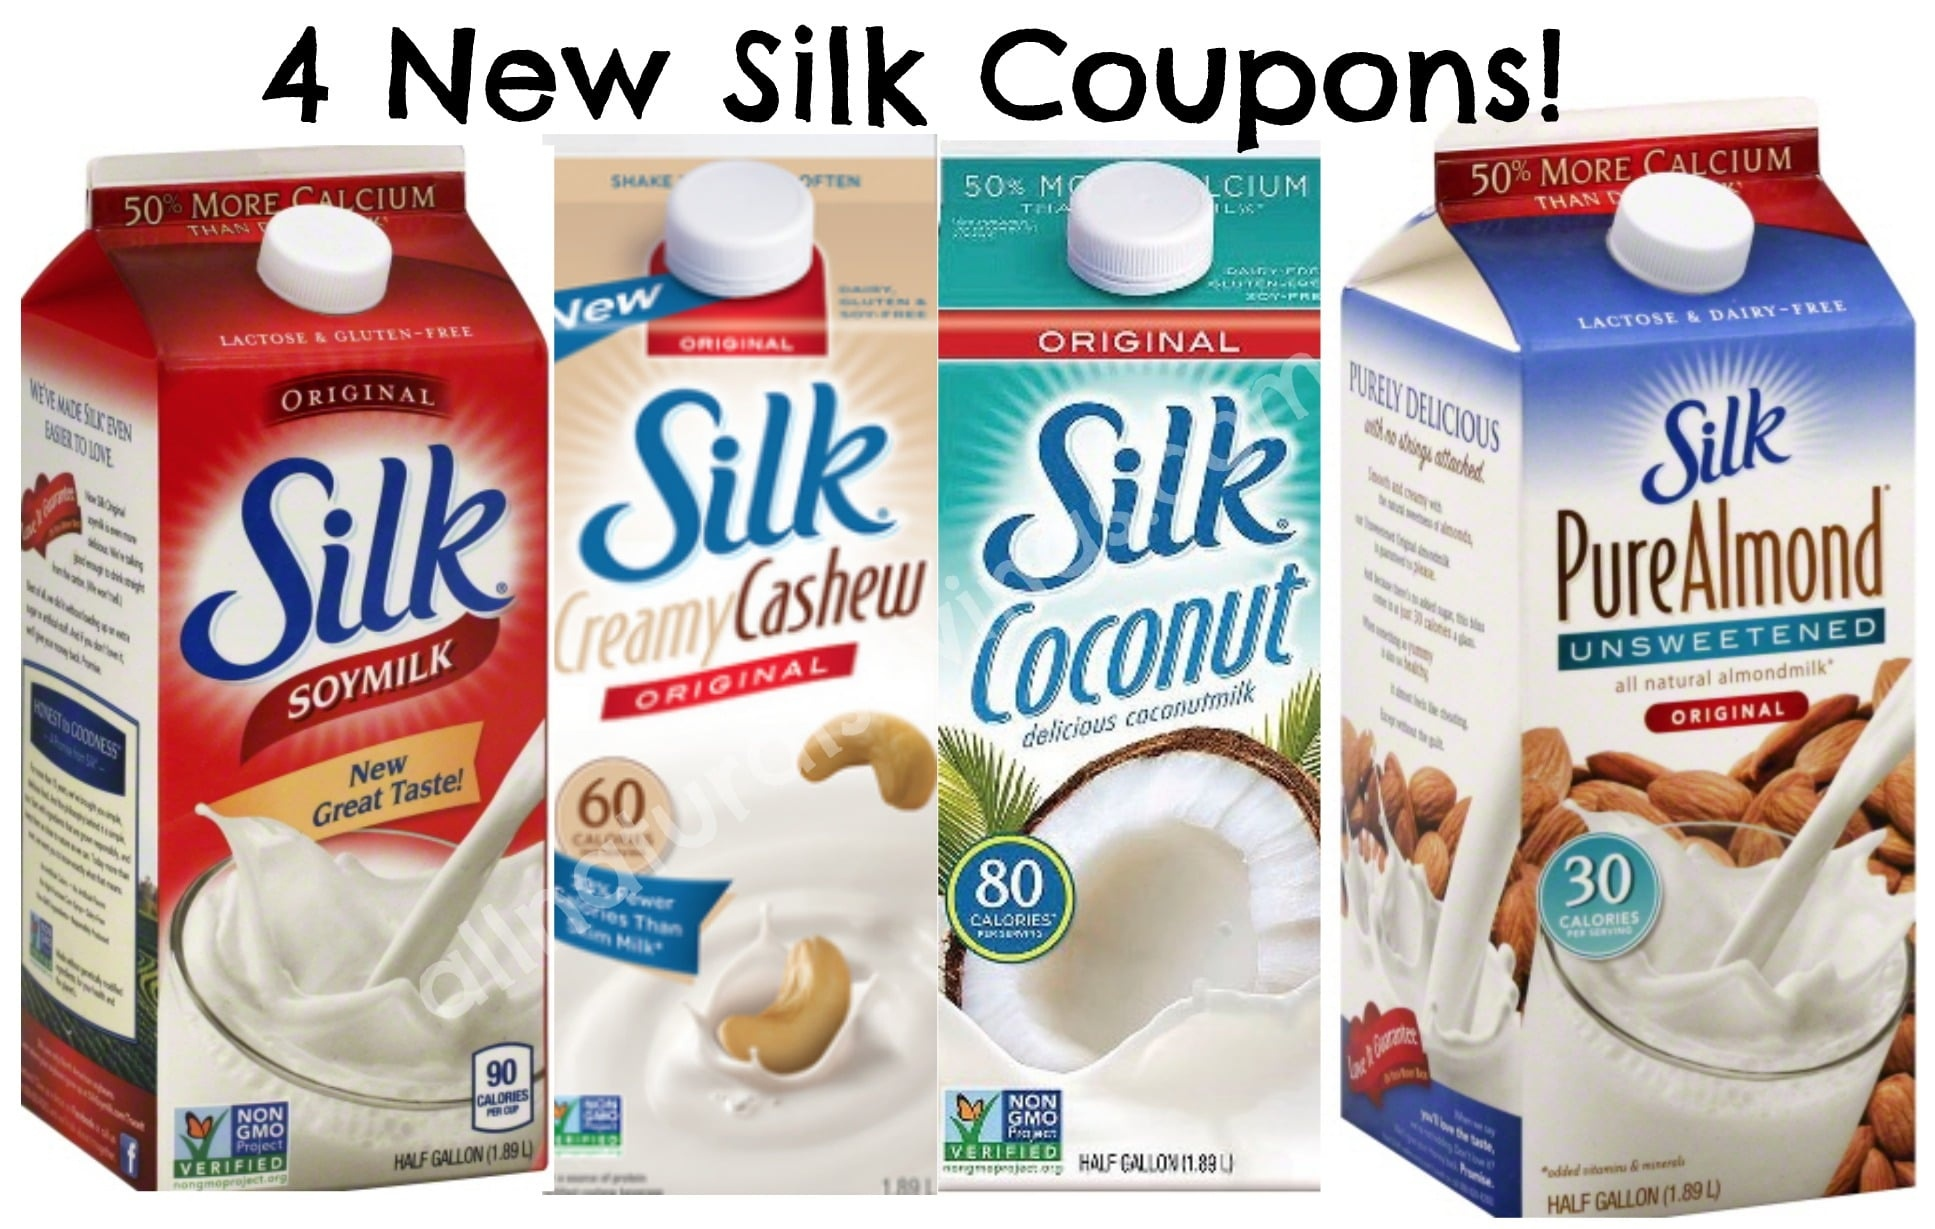 Four New Silk Dairy Free Milk Printable Coupons - All Natural Savings - Free Milk Coupons Printable